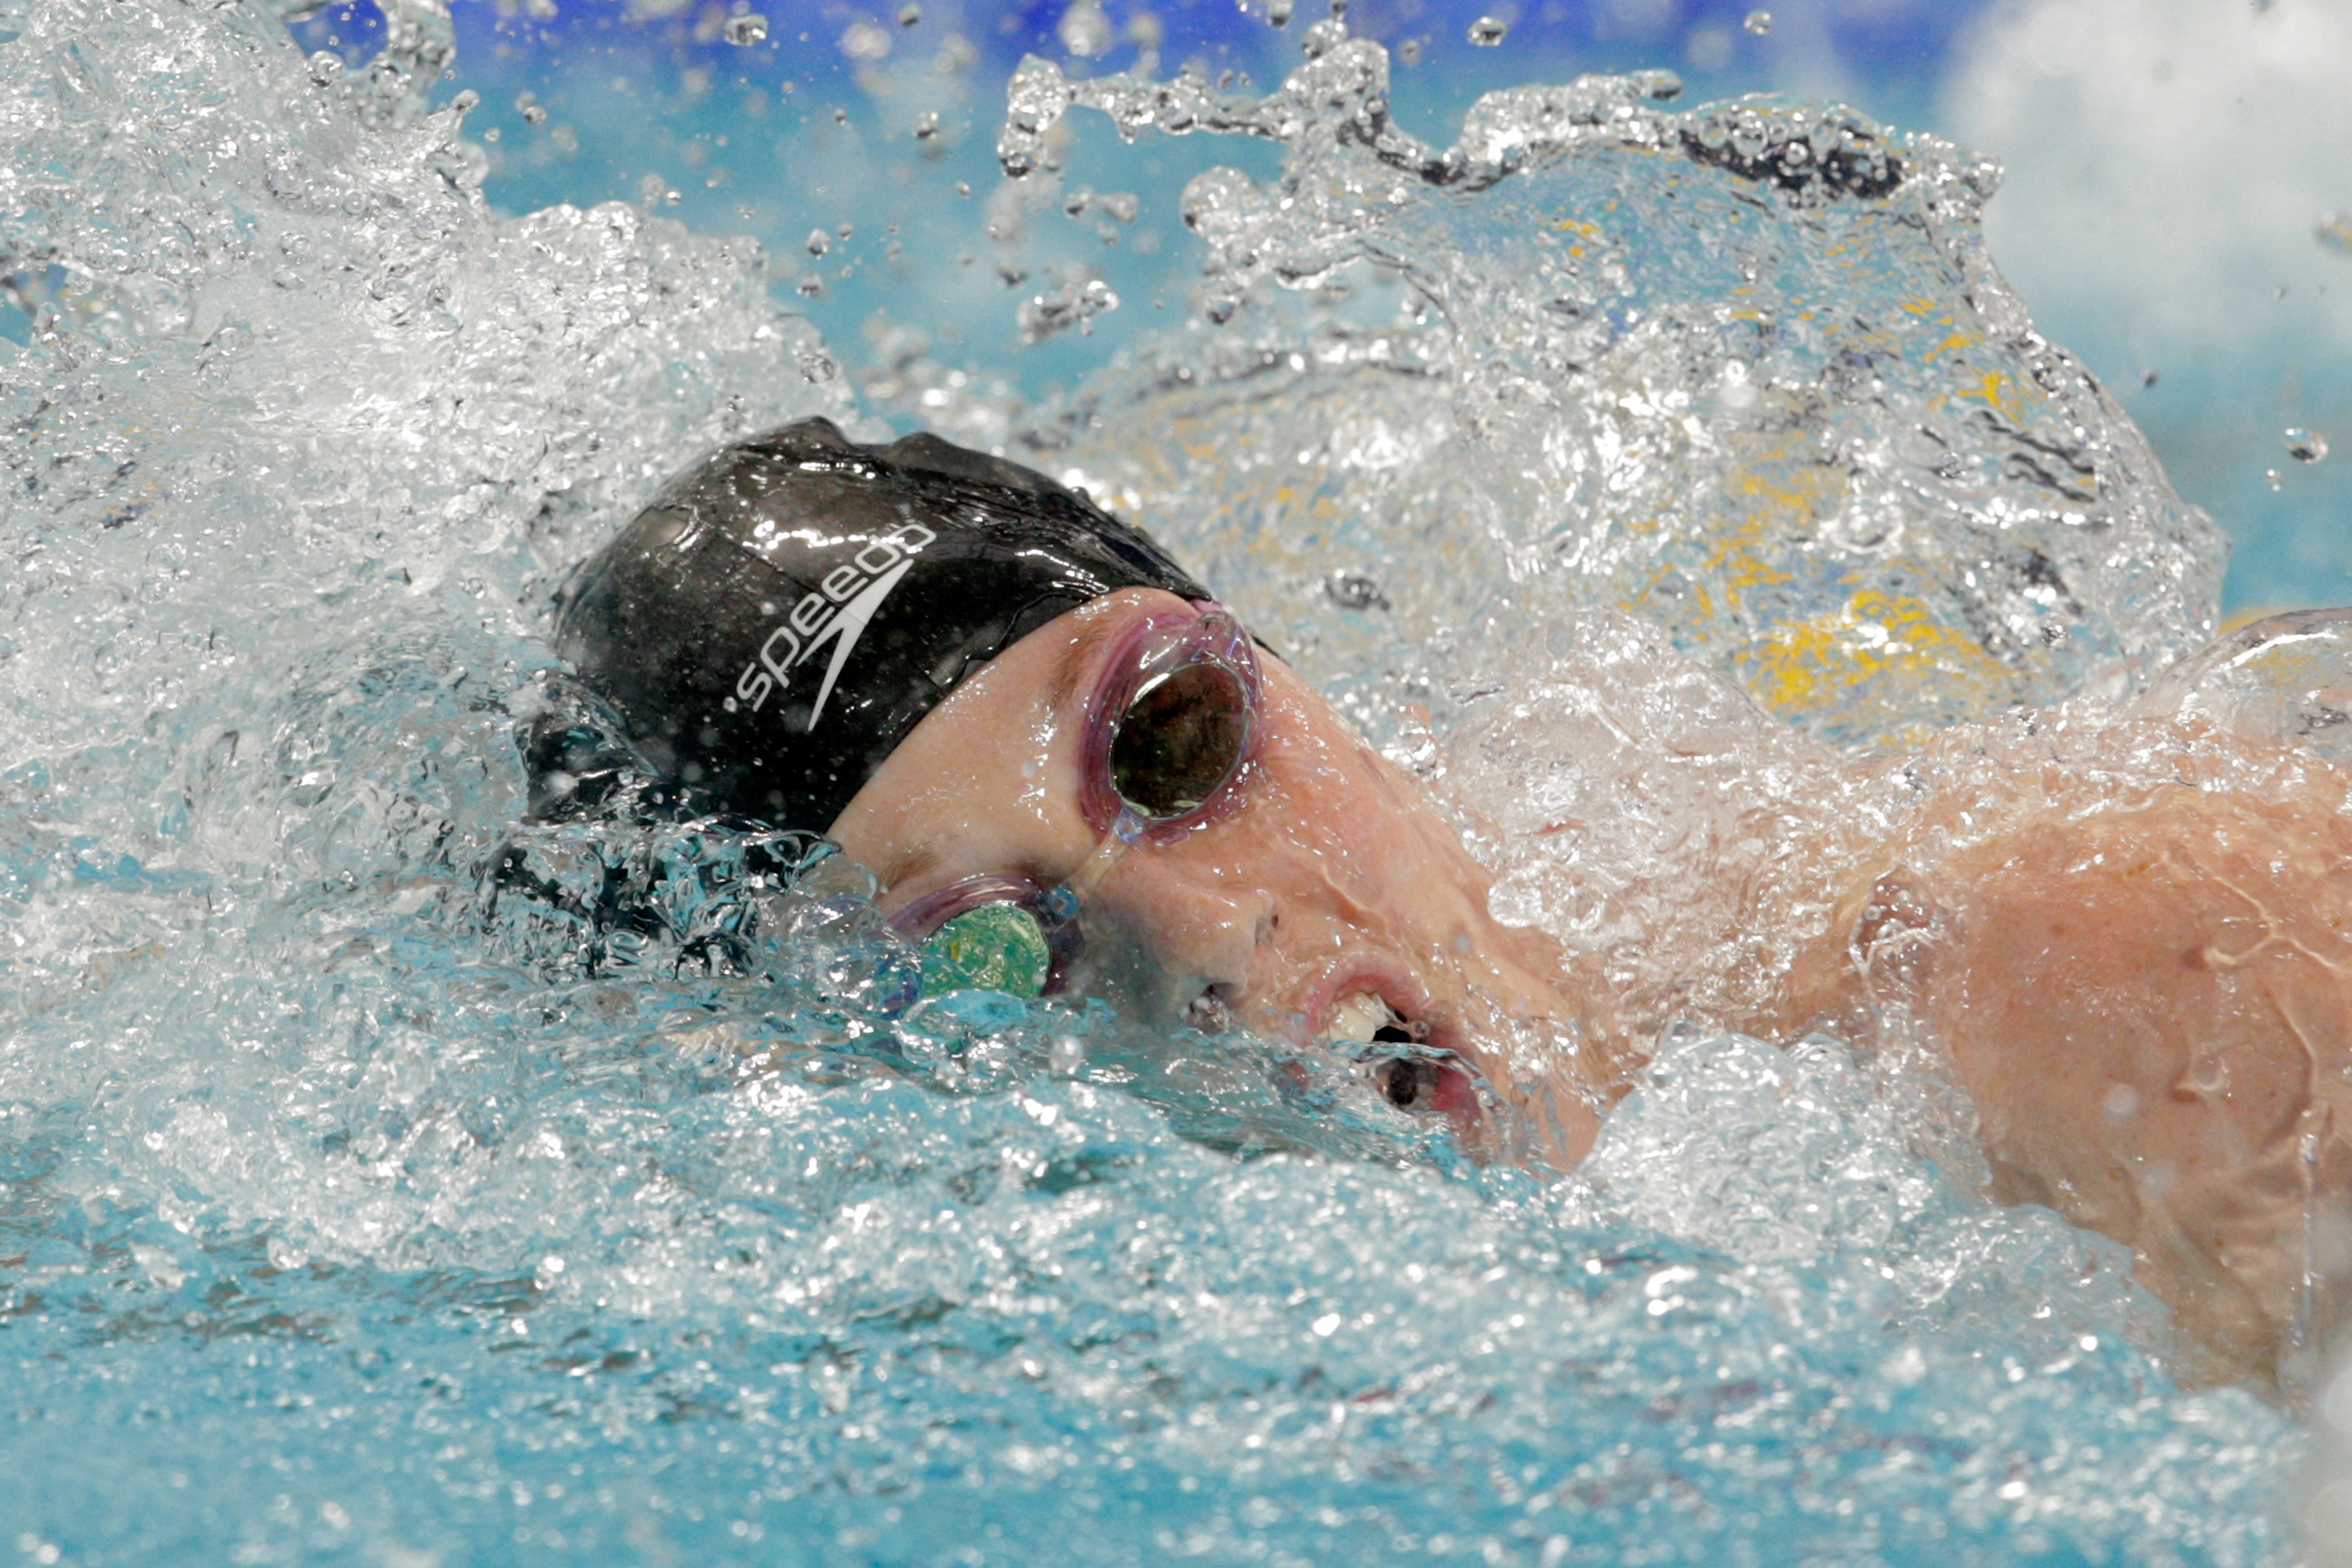 Missy Franklin of the United States competes in the Women's 200m Freestyle Final on day twelve of the 16th FINA World Championships at the Kazan Arena on August 5, 2015 in Kazan, Russia.  (Photo by Adam Pretty/Getty Images)